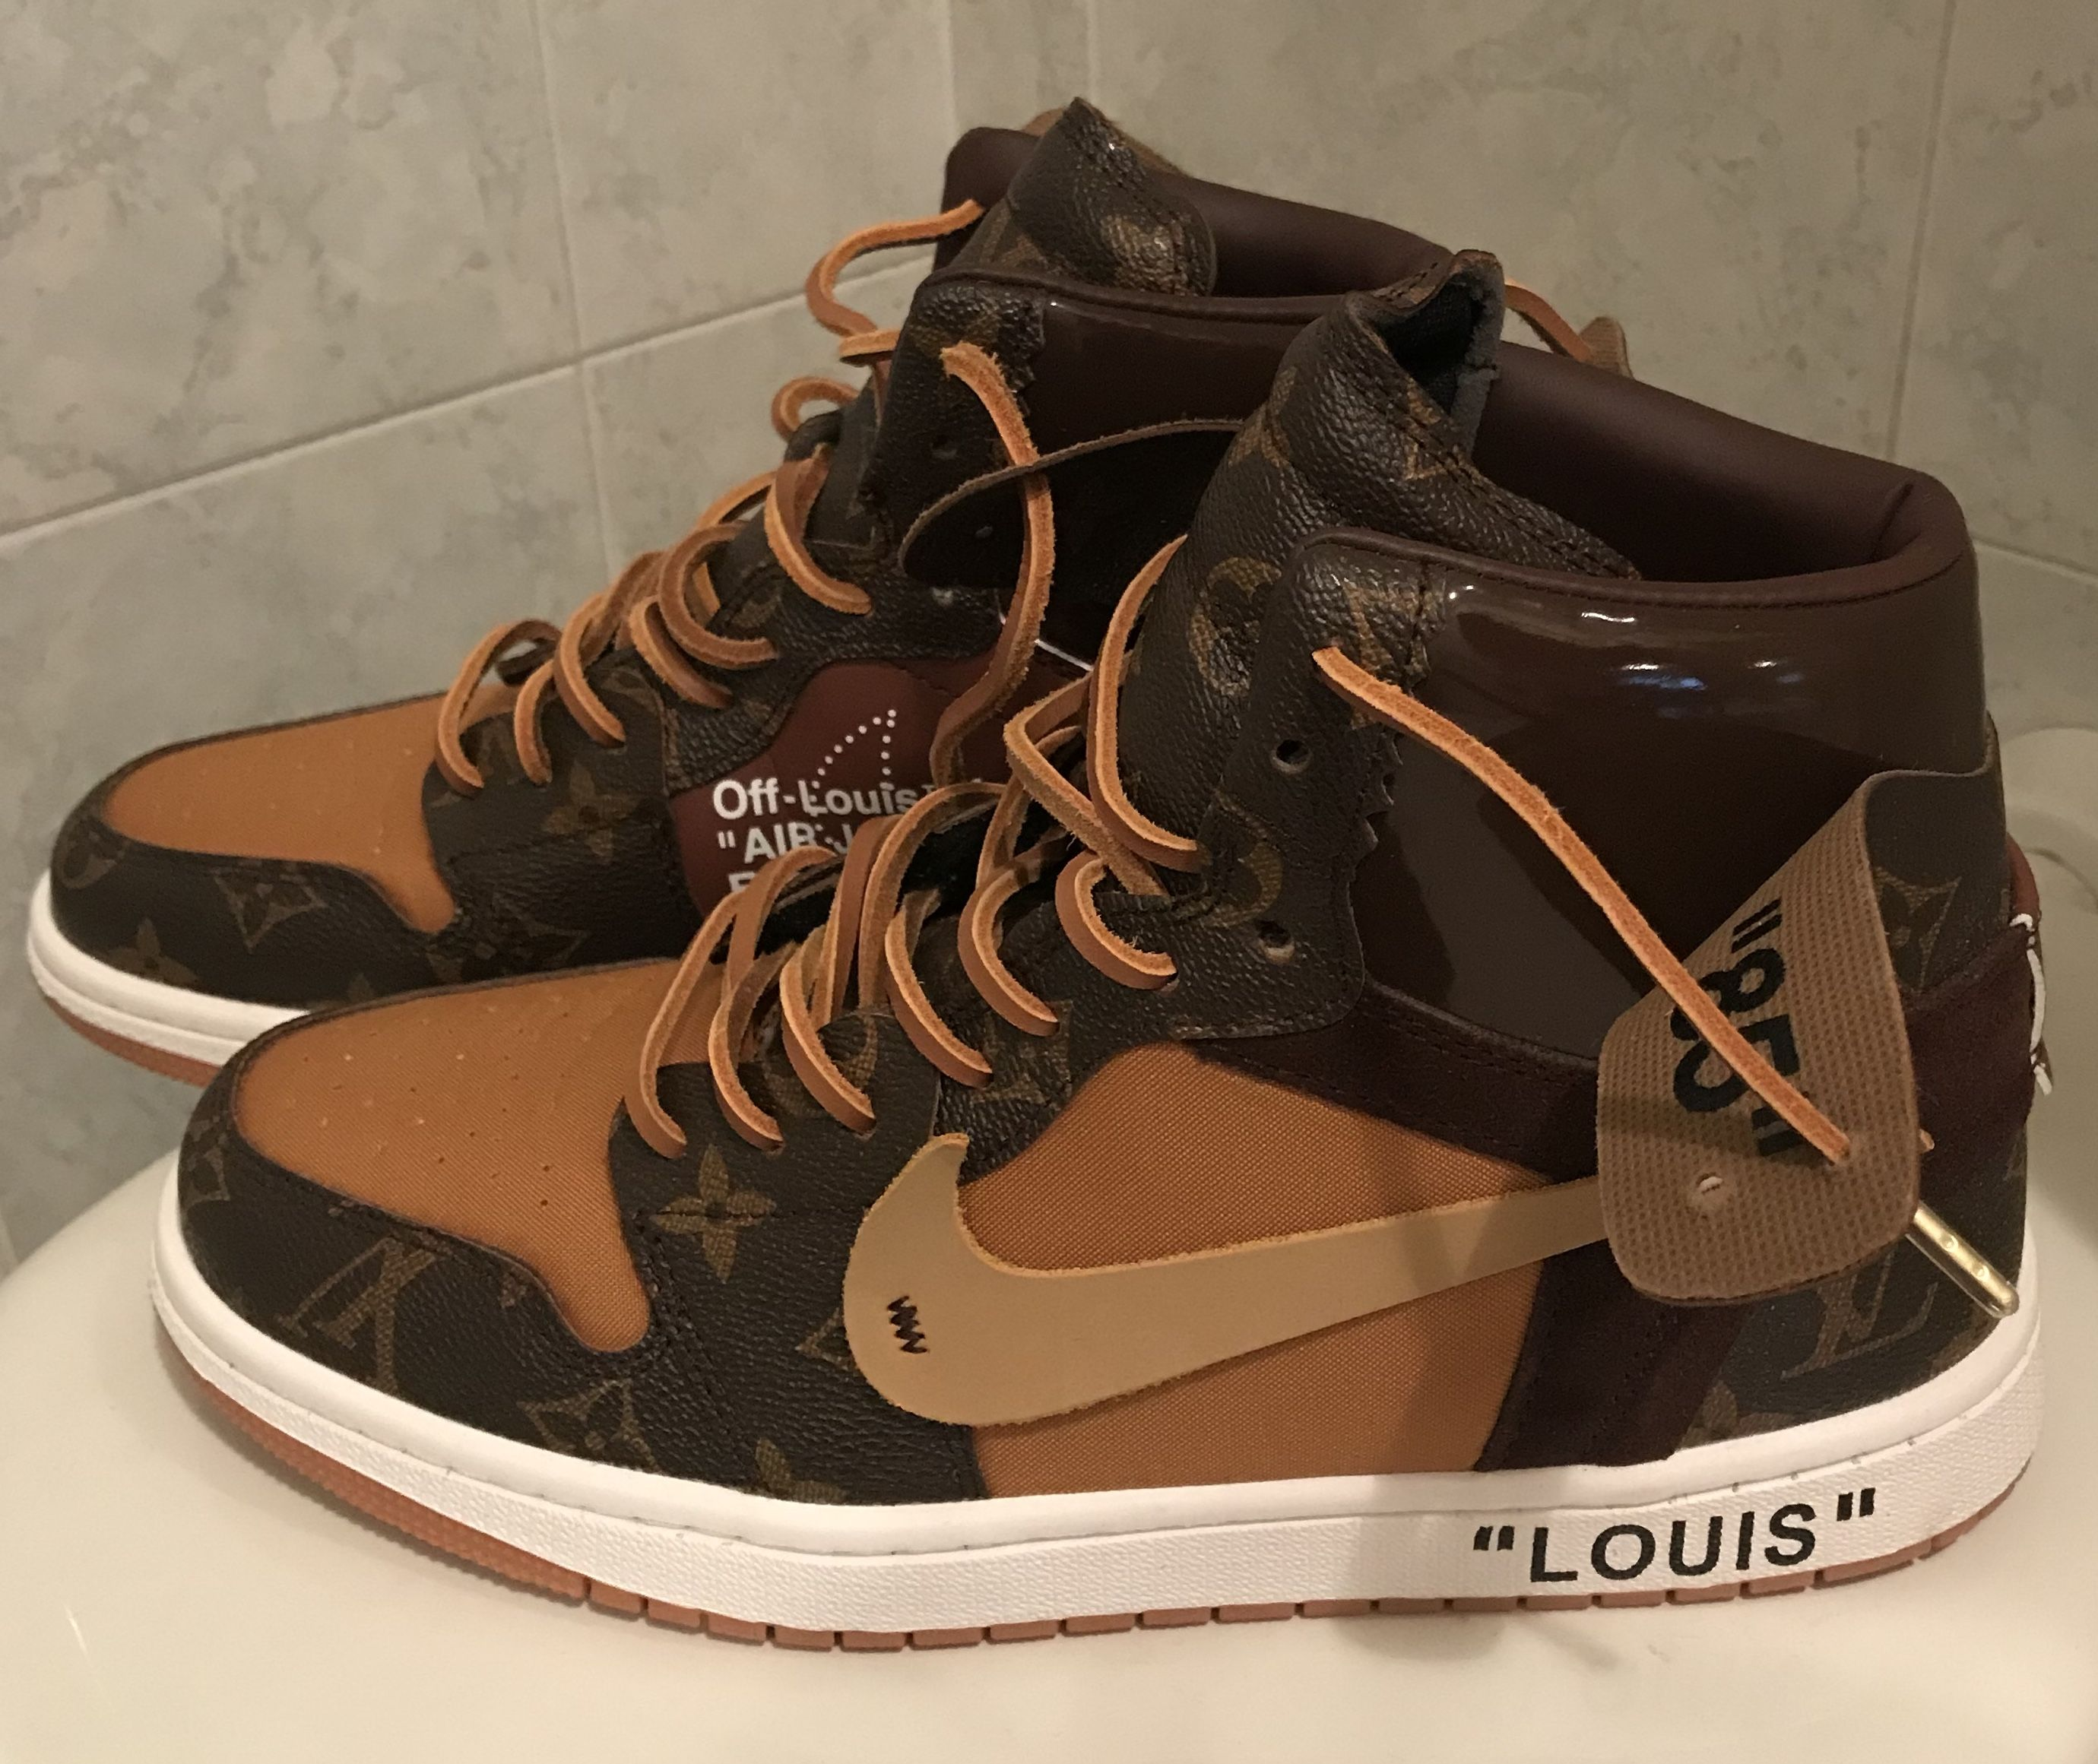 f813bdf0ff6 NIKE Off-Louis Air Jordan 1 x Off-White x Louis Vuitton by CEEZE (Custom  sneakers)